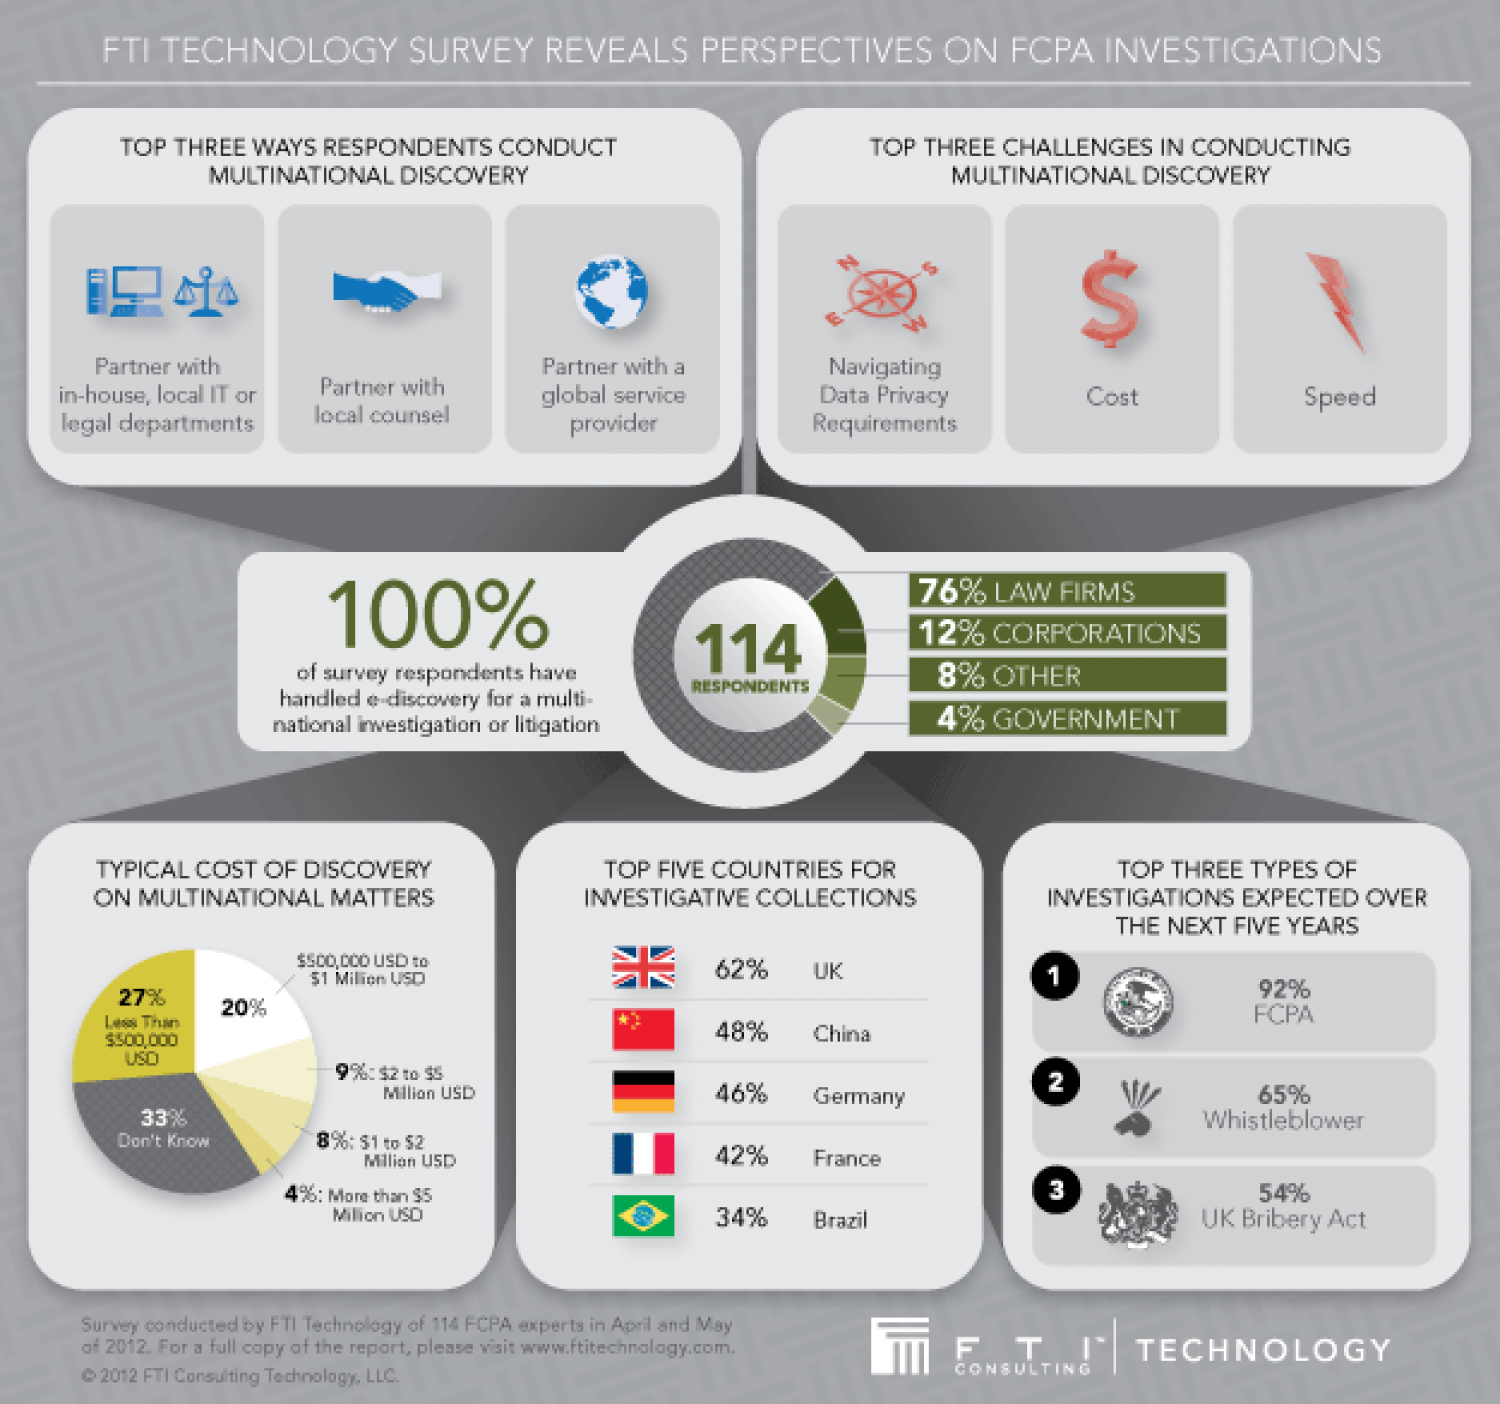 FTI Technology Survey Reveals Perspectives on FCPA Investigations Infographic